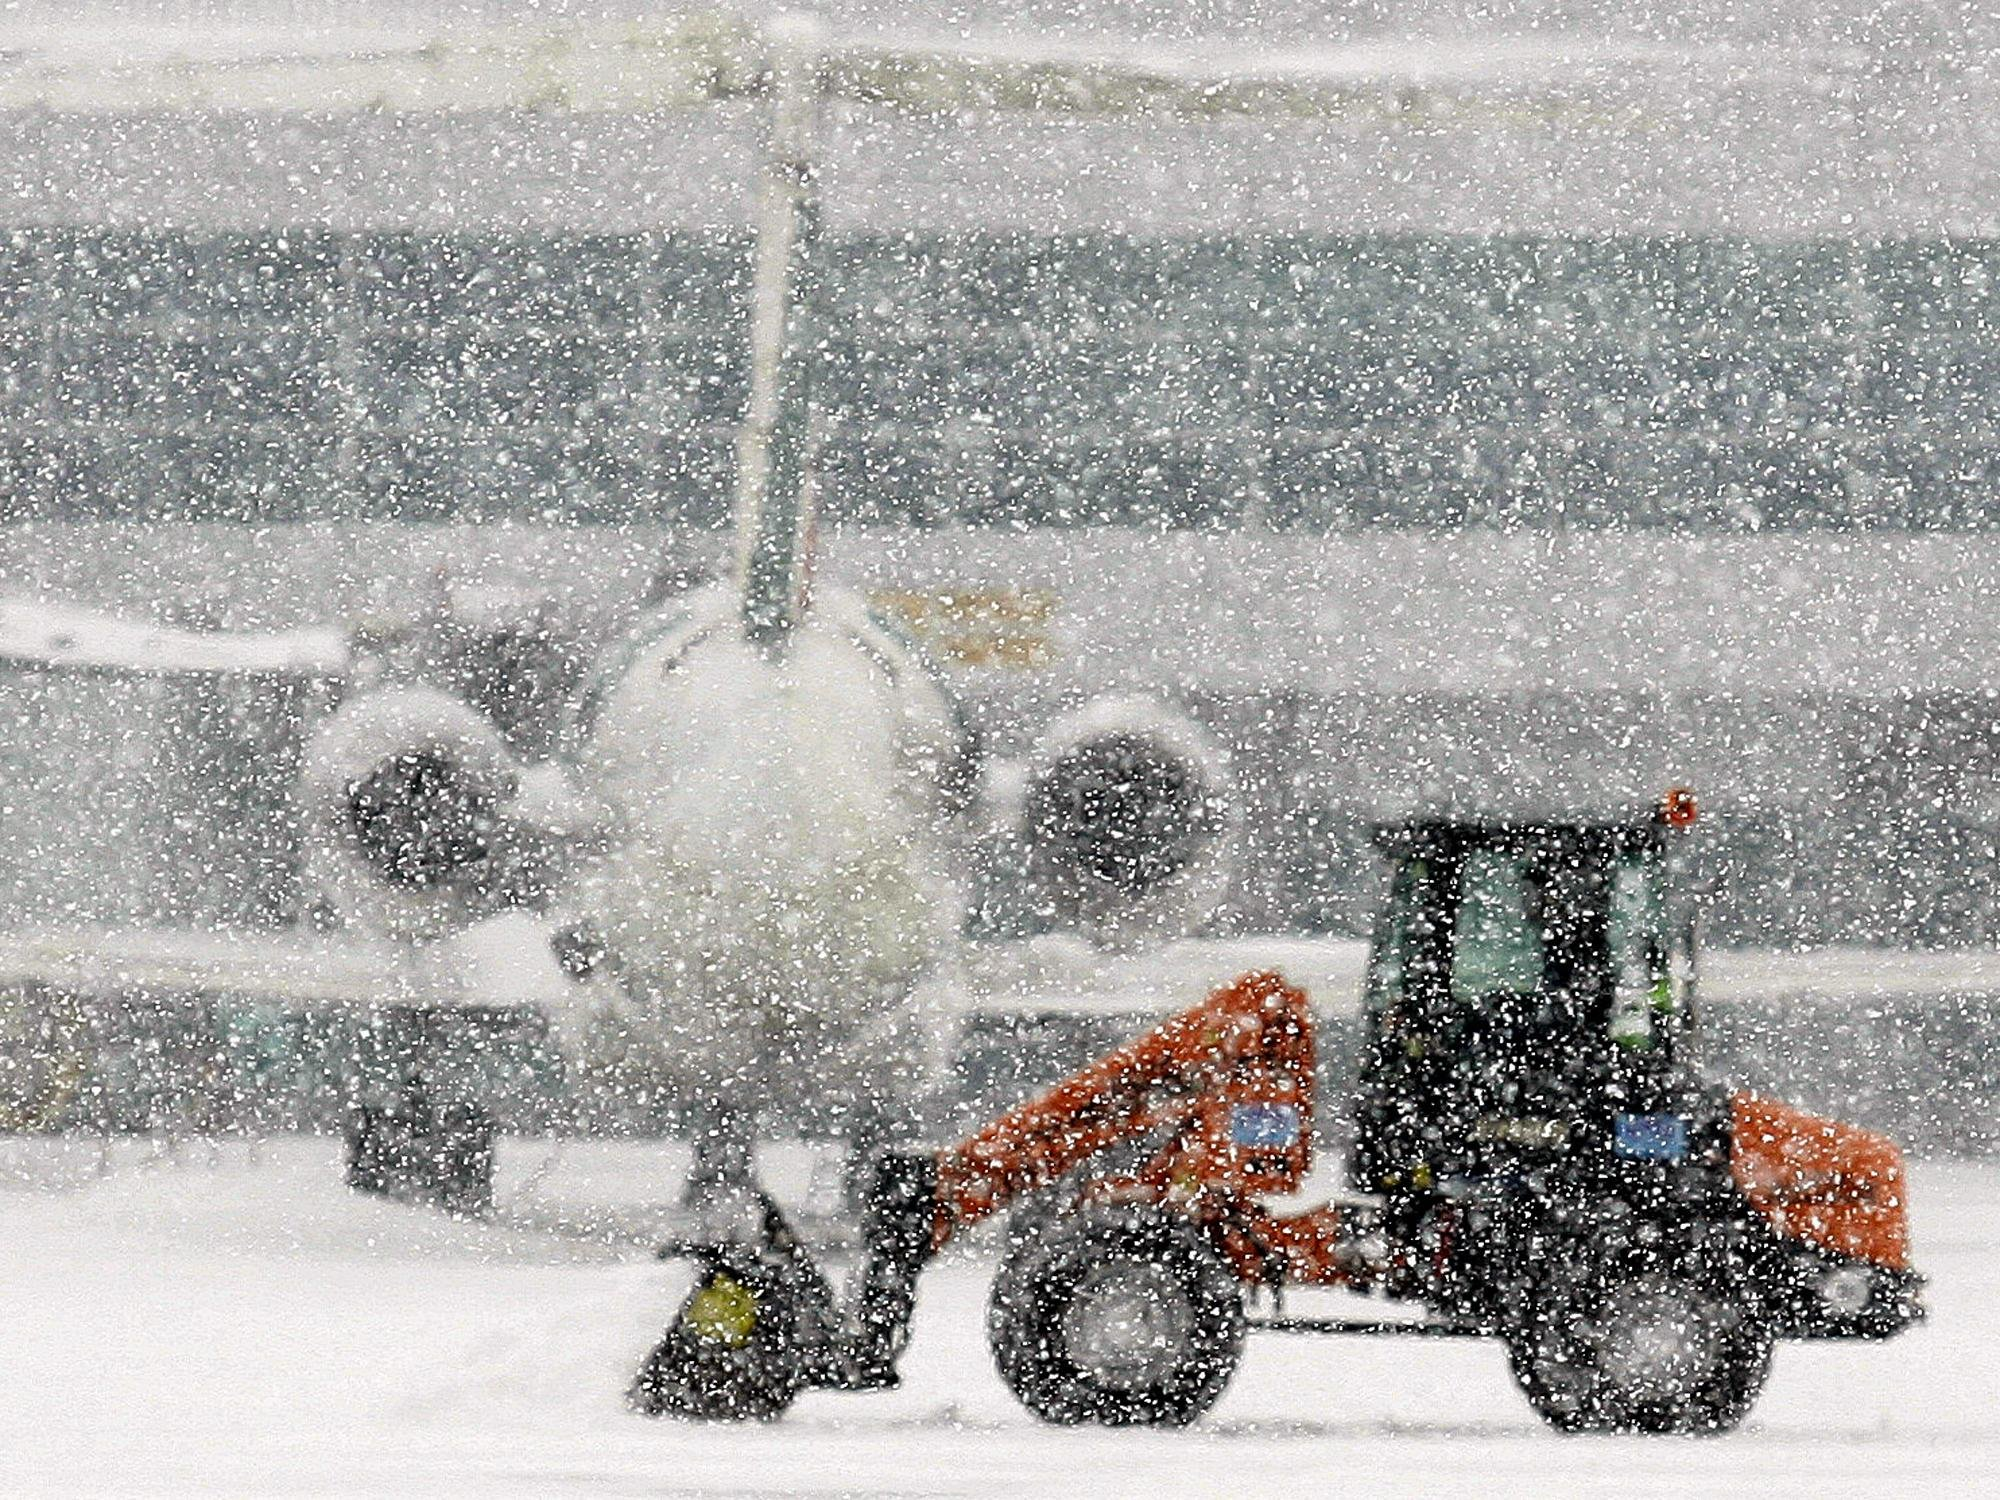 Syracuse airport flights canceled, delayed due to massive winter storm